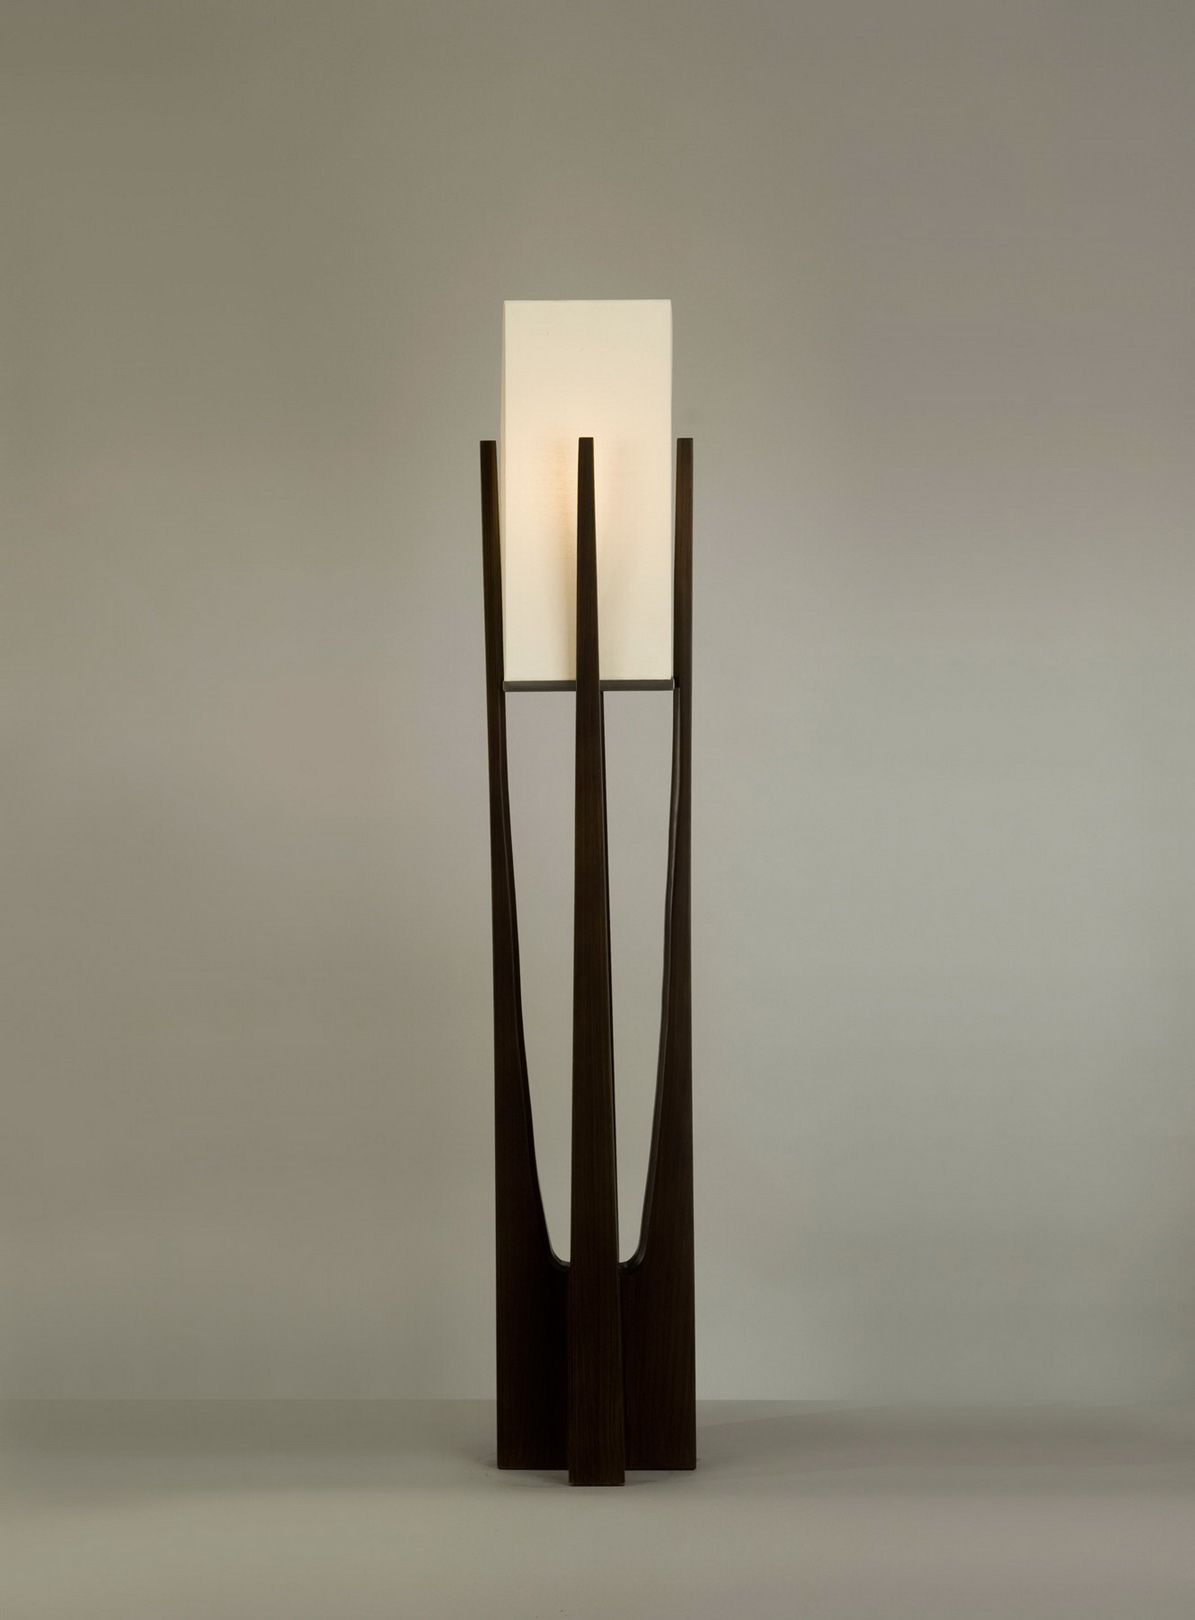 Unusual floor lamps google search floor lamps pinterest explore unusual floor lamps cool floor lamps and more aloadofball Gallery